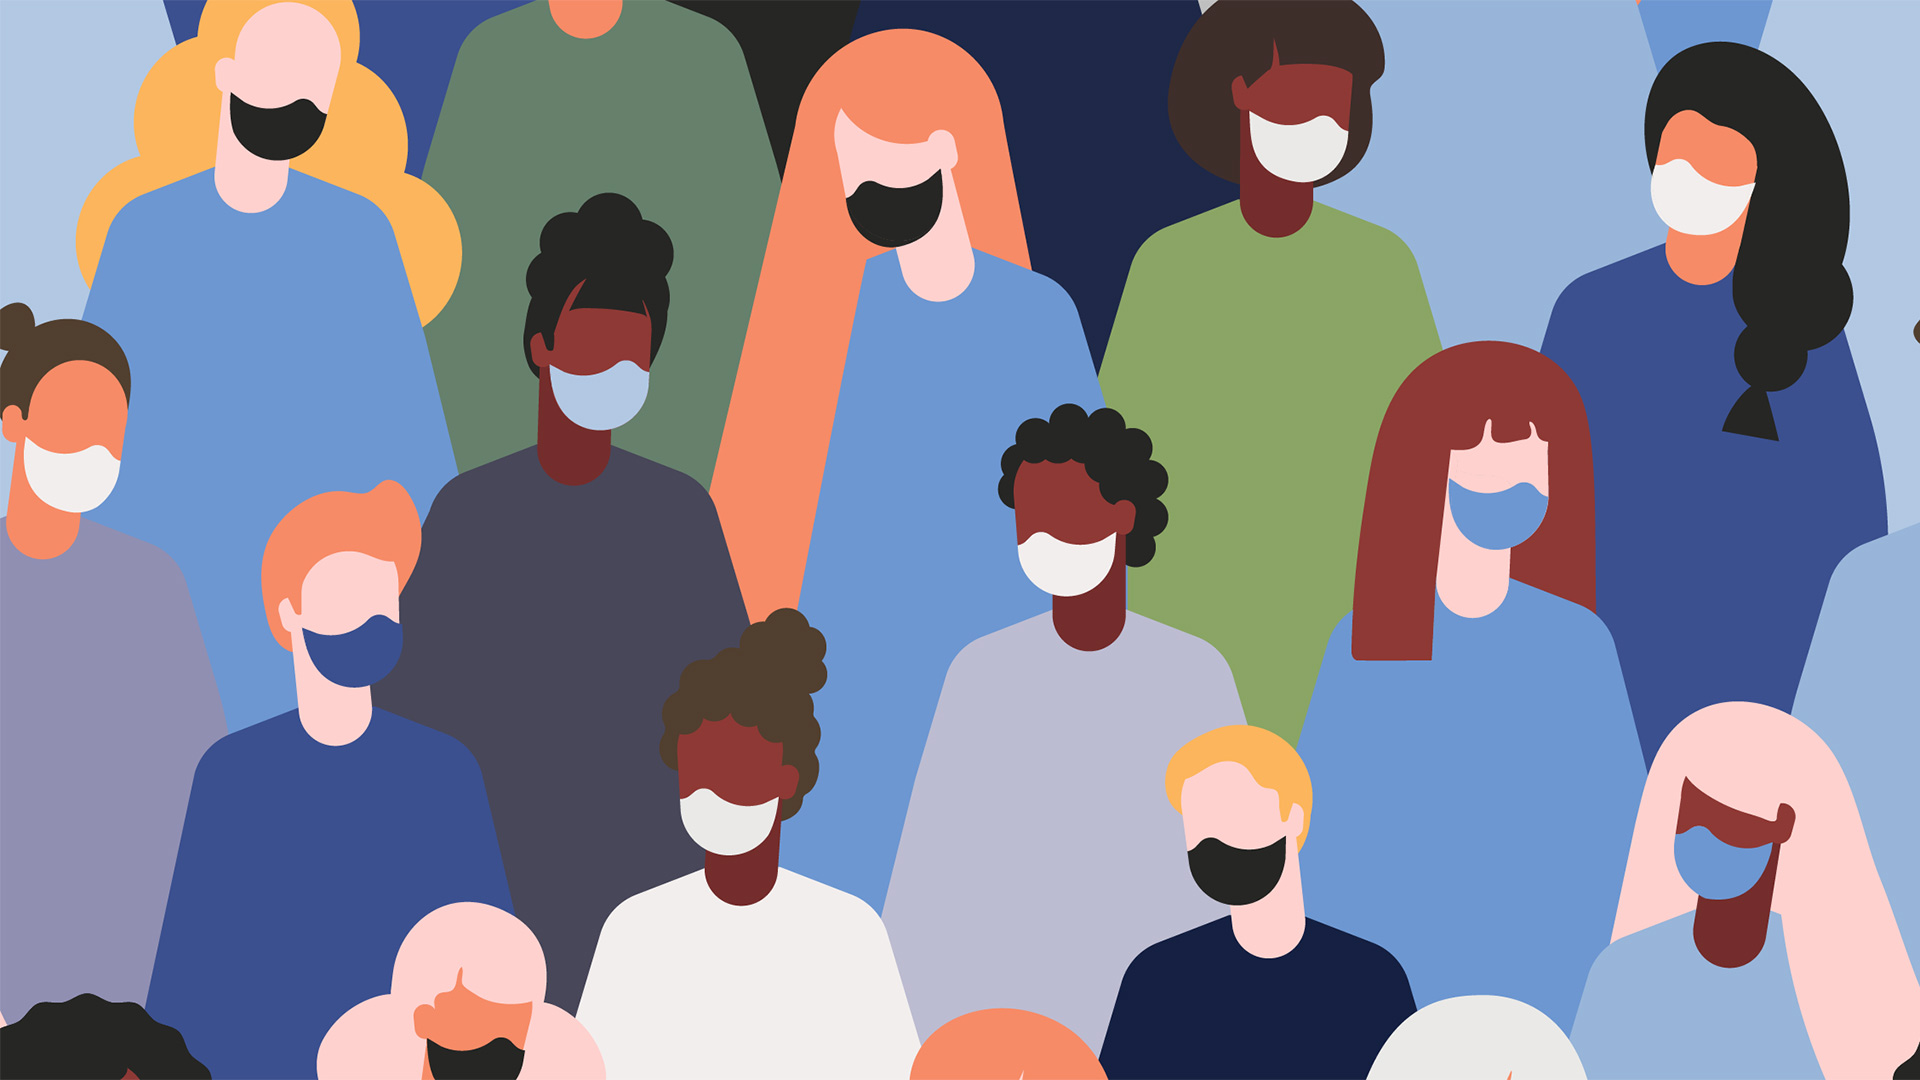 This week's Public Health Research at Maryland forum will seek to turn what we've learned during the current pandemic and period of social upheaval into useful knowledge to combat future public health crises rooted in challenges ranging from climate change to pathogens to societal inequity. (Illustration by iStock)